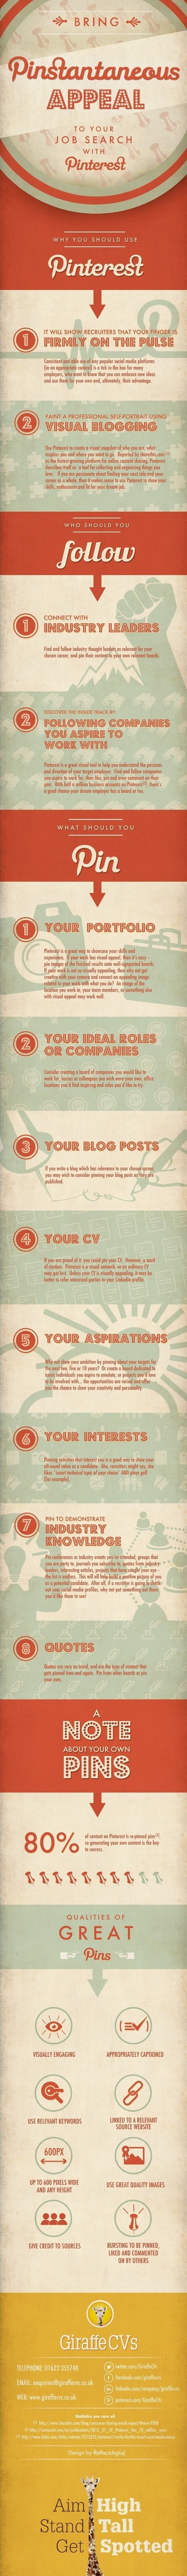 Pinterest infographic | How to use Pinterest for your job search | Digital-News on Scoop.it today | Scoop.it